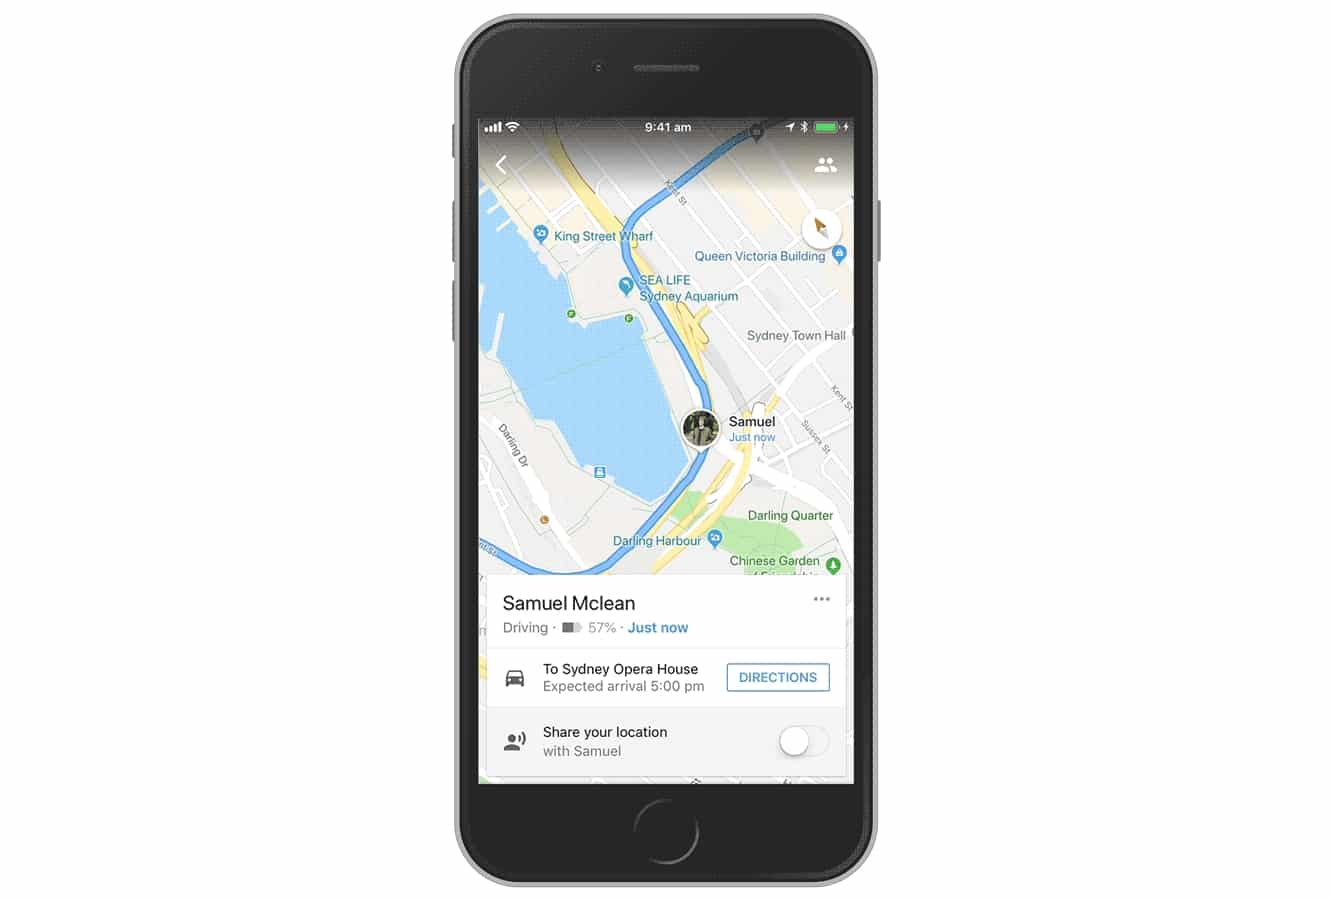 Google Maps for iOS gets real-time trip and ETA sharing